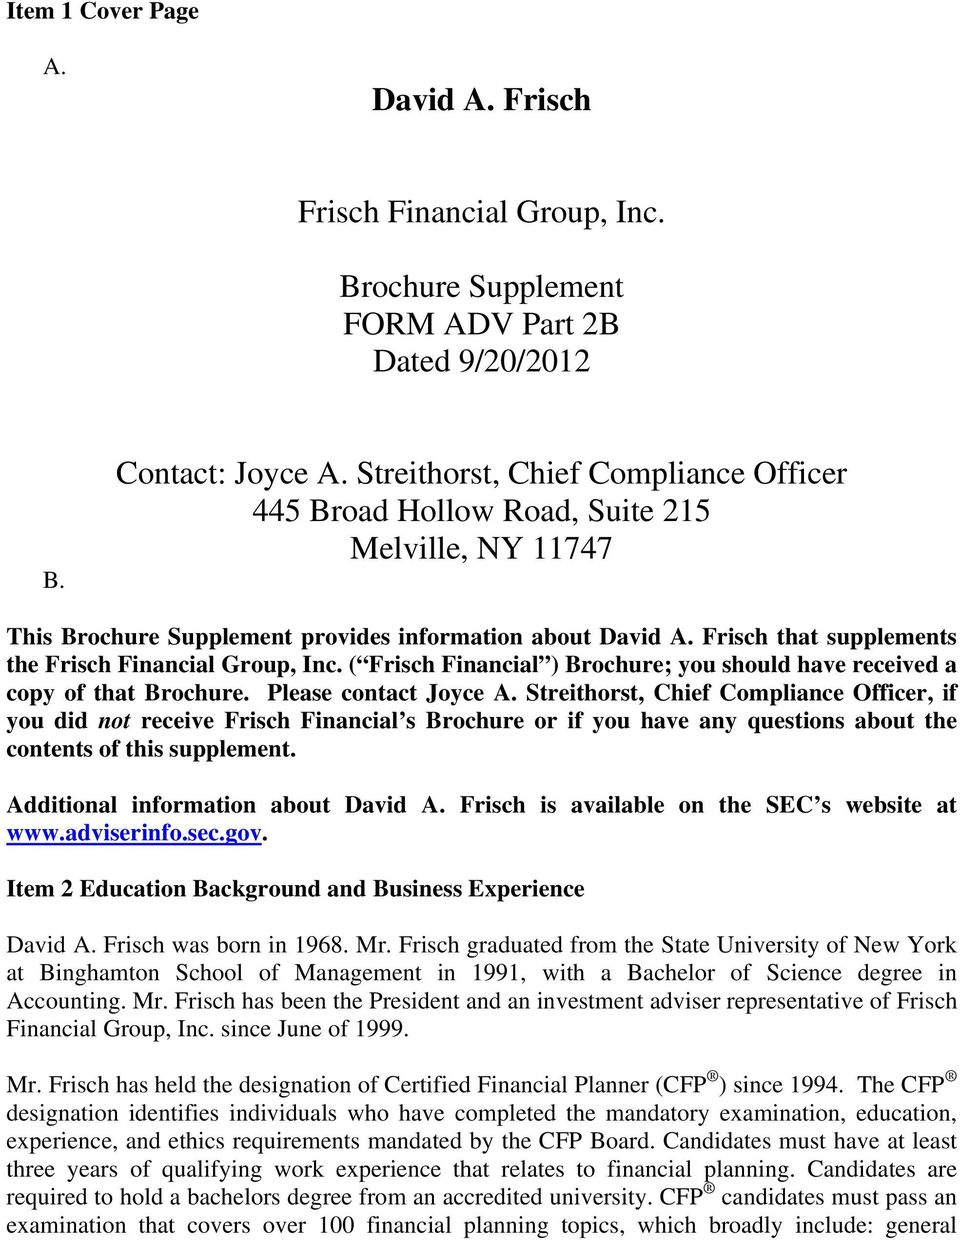 Frisch that supplements the Frisch Financial Group, Inc. ( Frisch Financial ) Brochure; you should have received a copy of that Brochure. Please contact Joyce A.